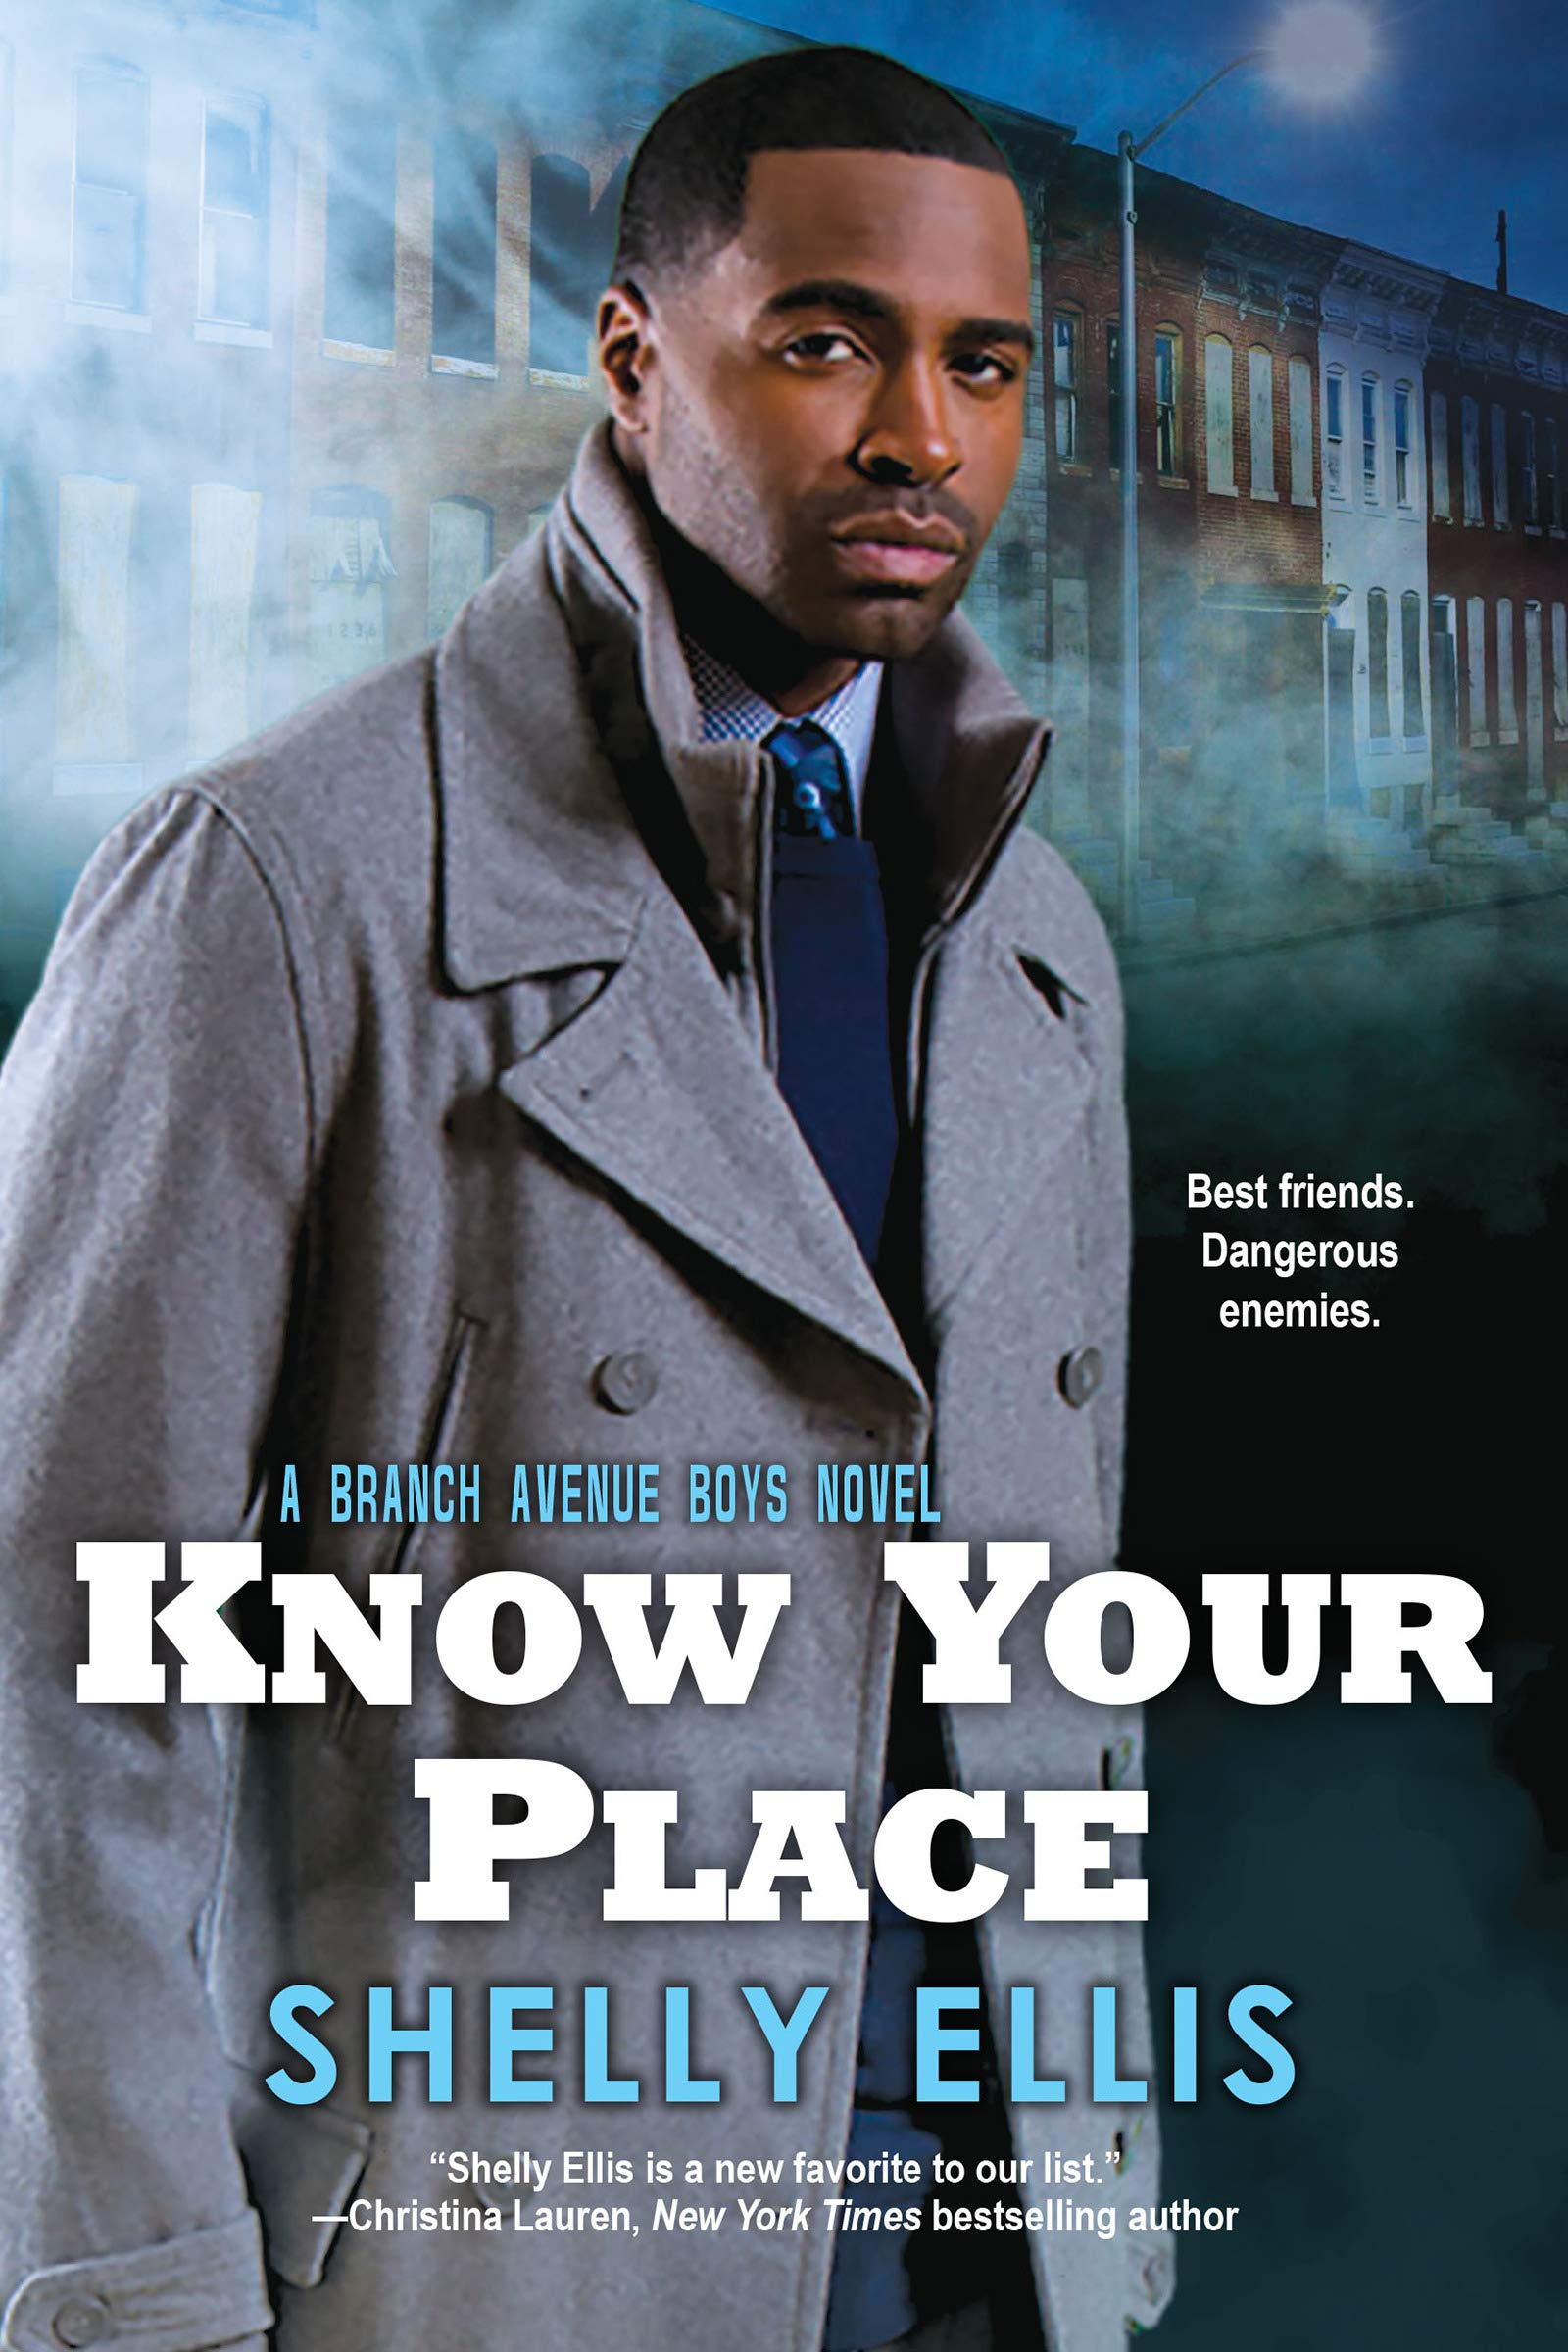 know your place smaller cover pic.jpg